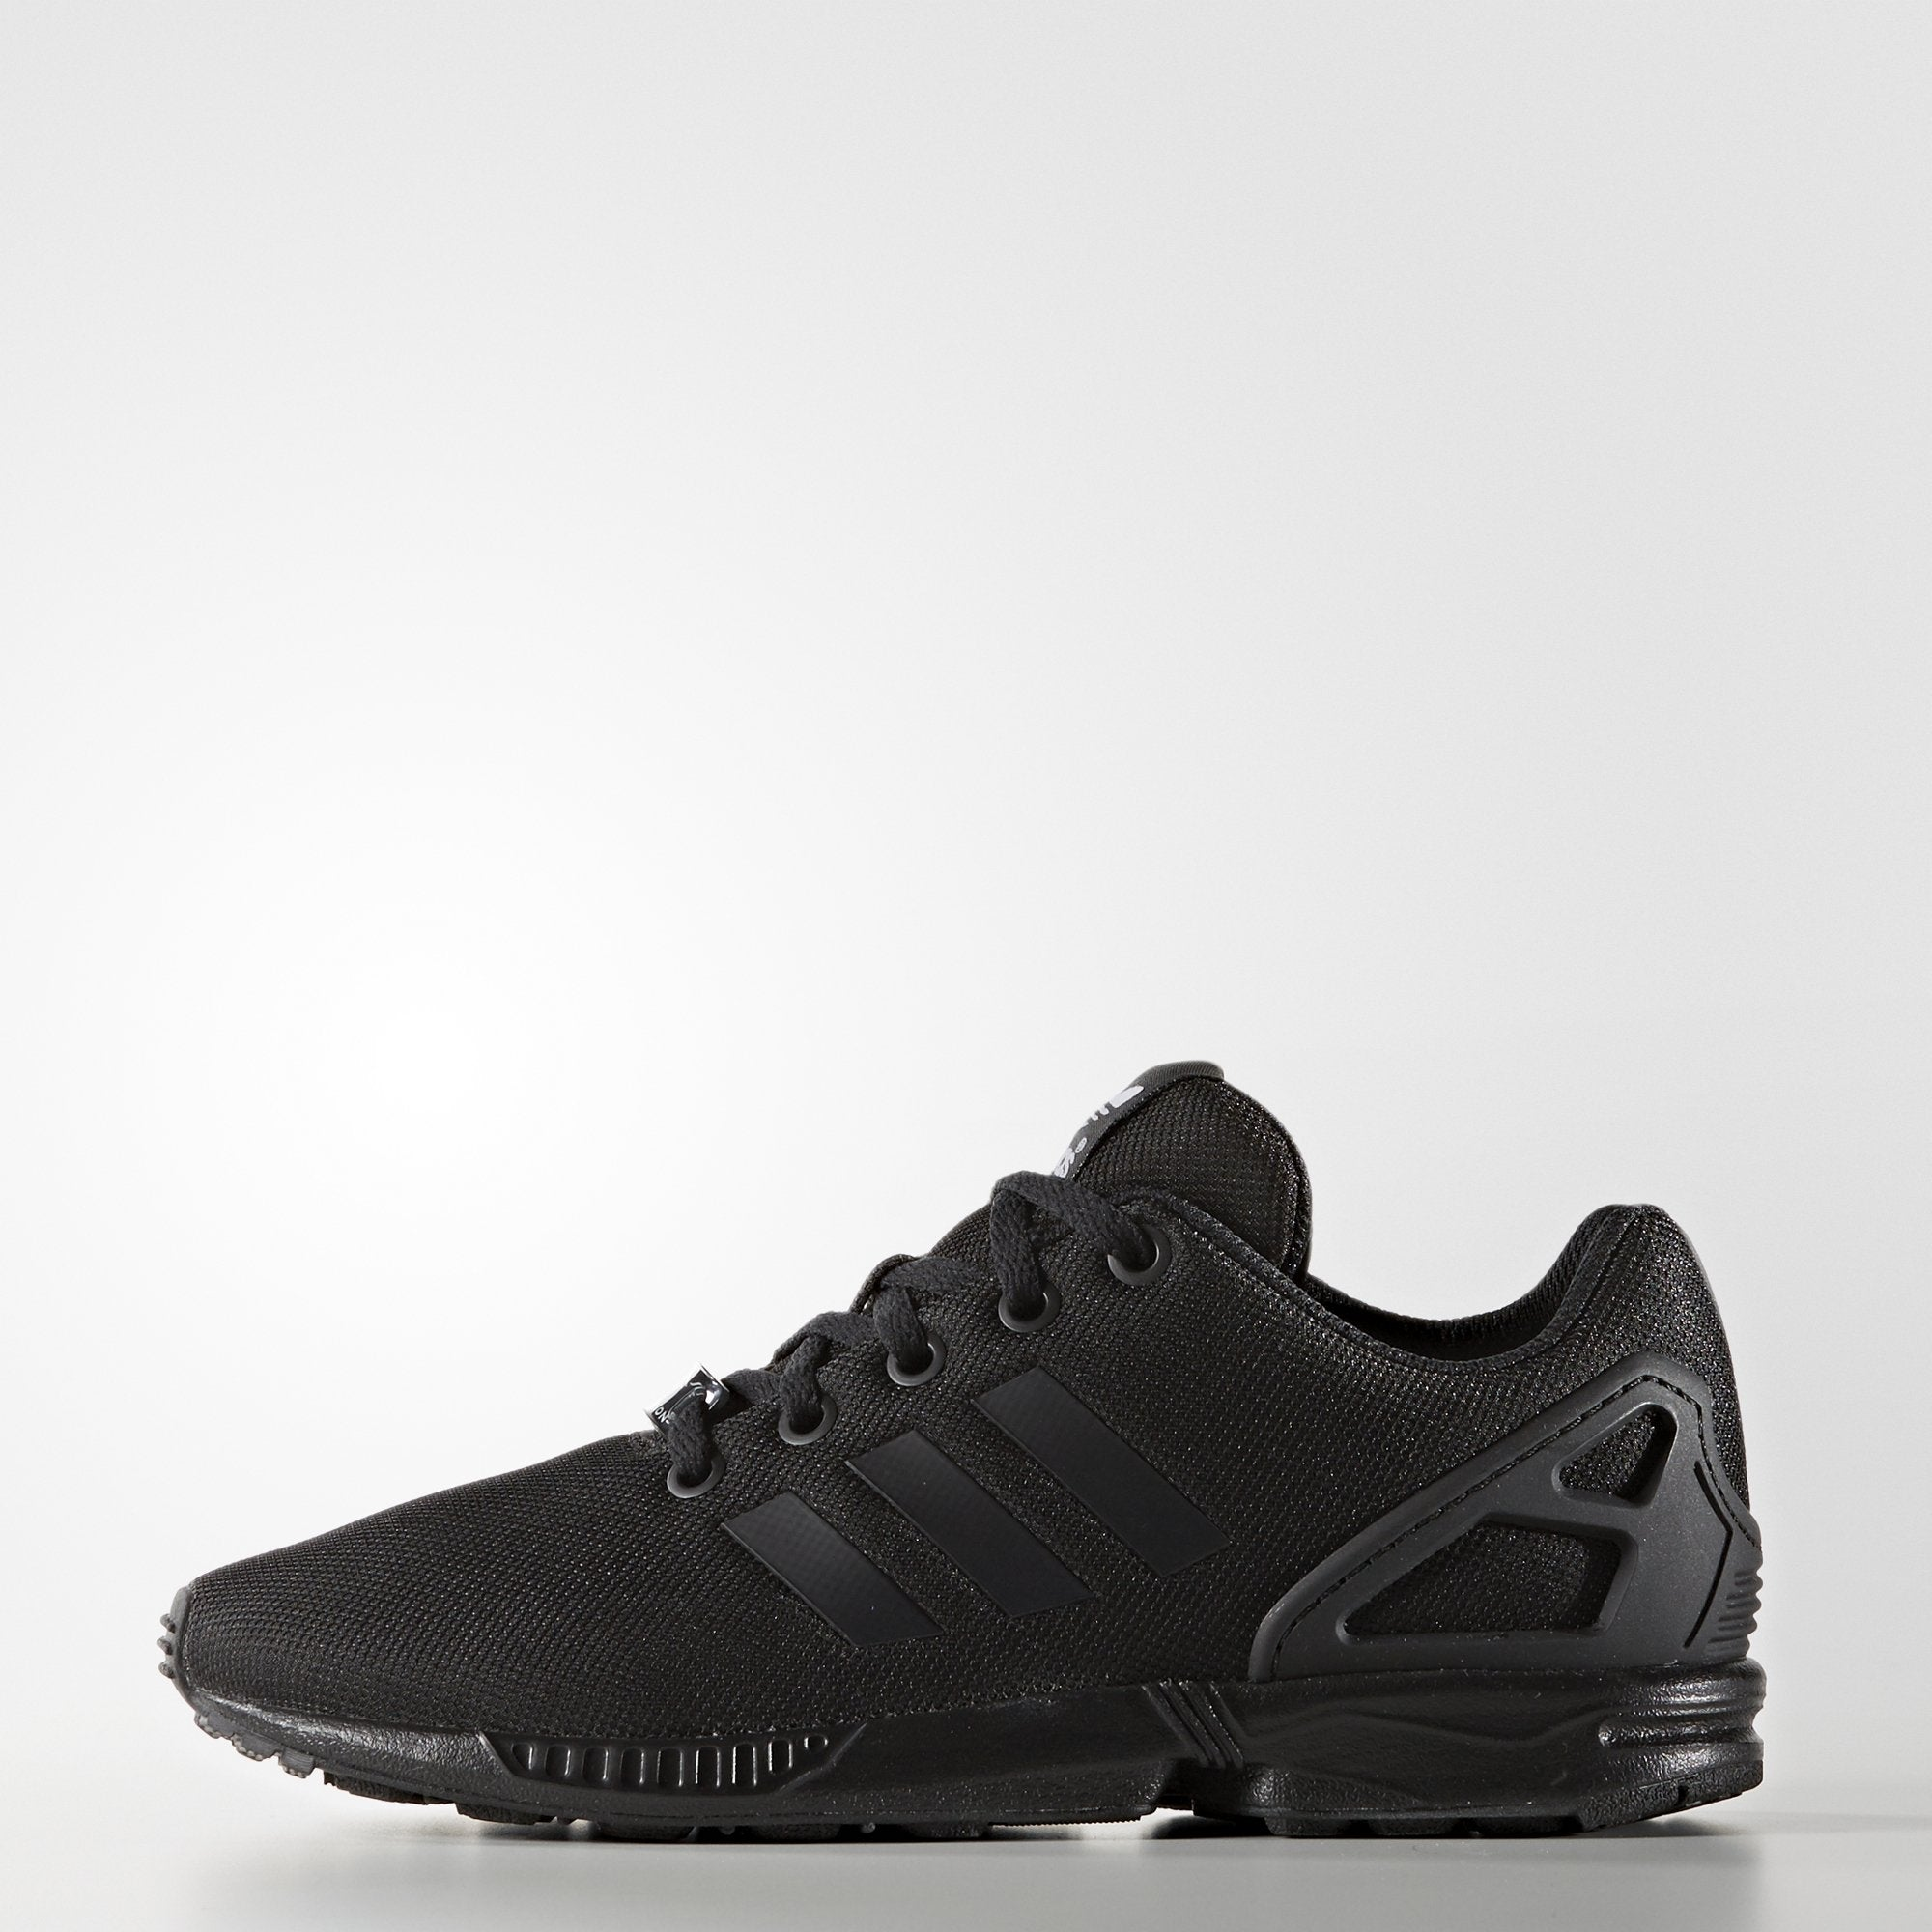 adidas ZX Flux Shoes – Branded Feet e4c8c529bc13